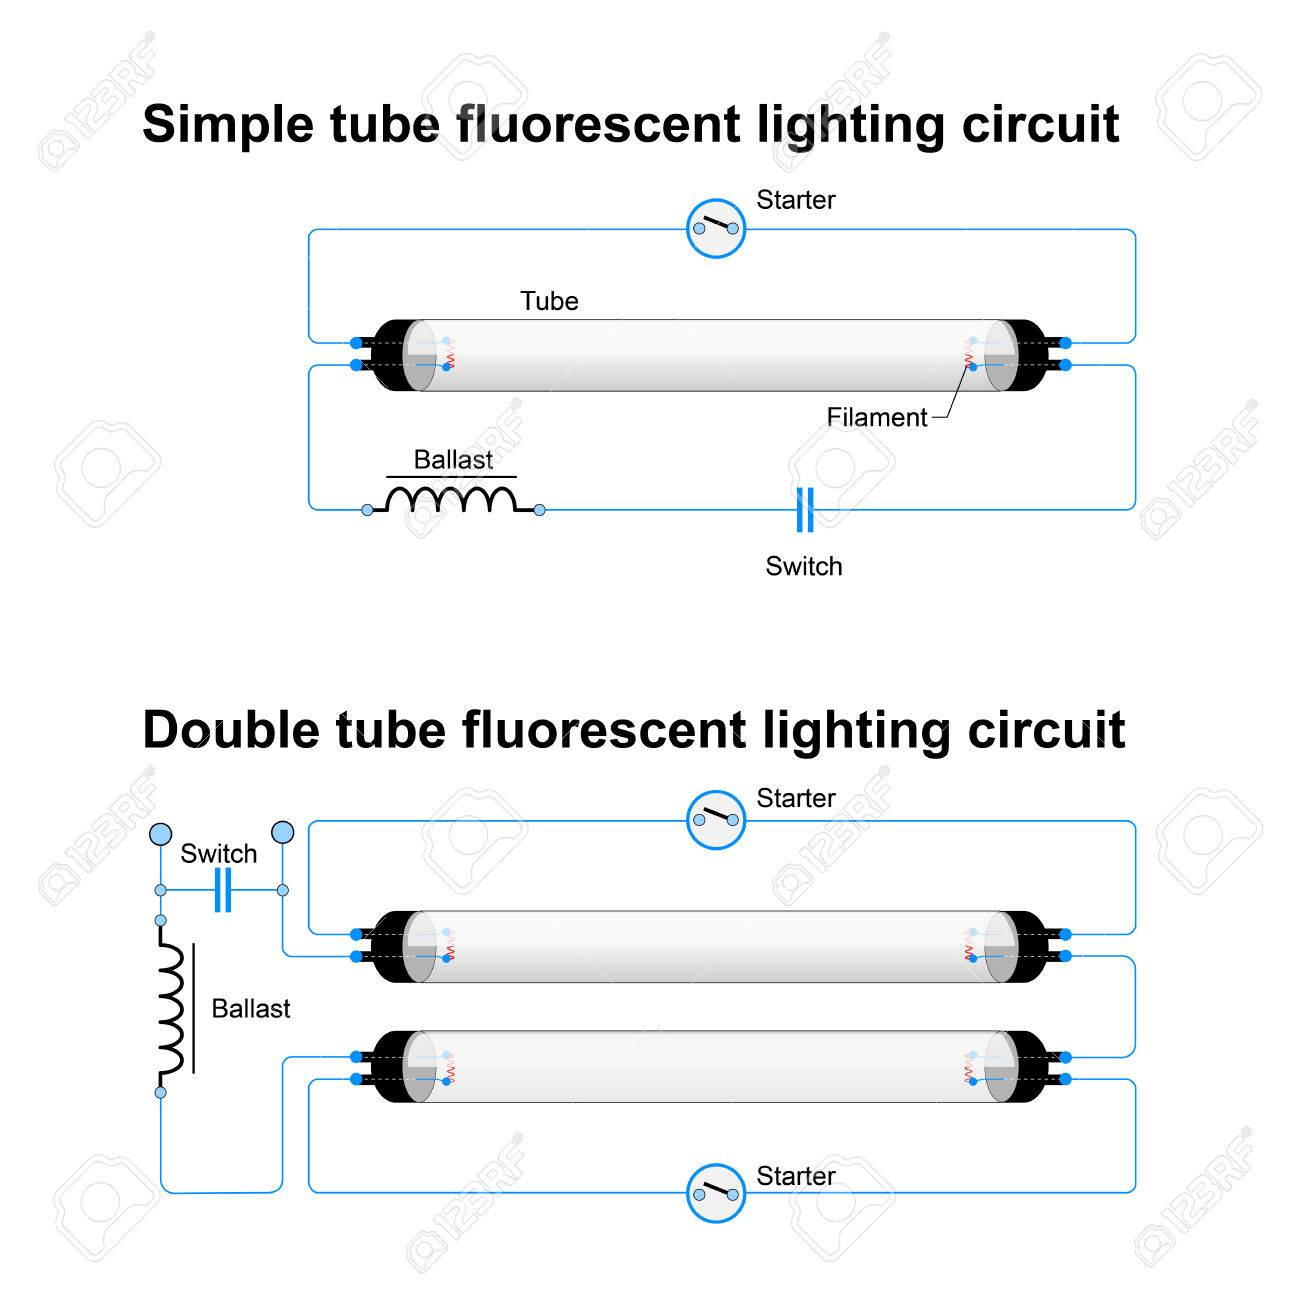 fluorescent light diagram smart wiring diagrams u2022 rh emgsolutions co wiring a fluorescent light for led wiring a fluorescent light fixture to a switch